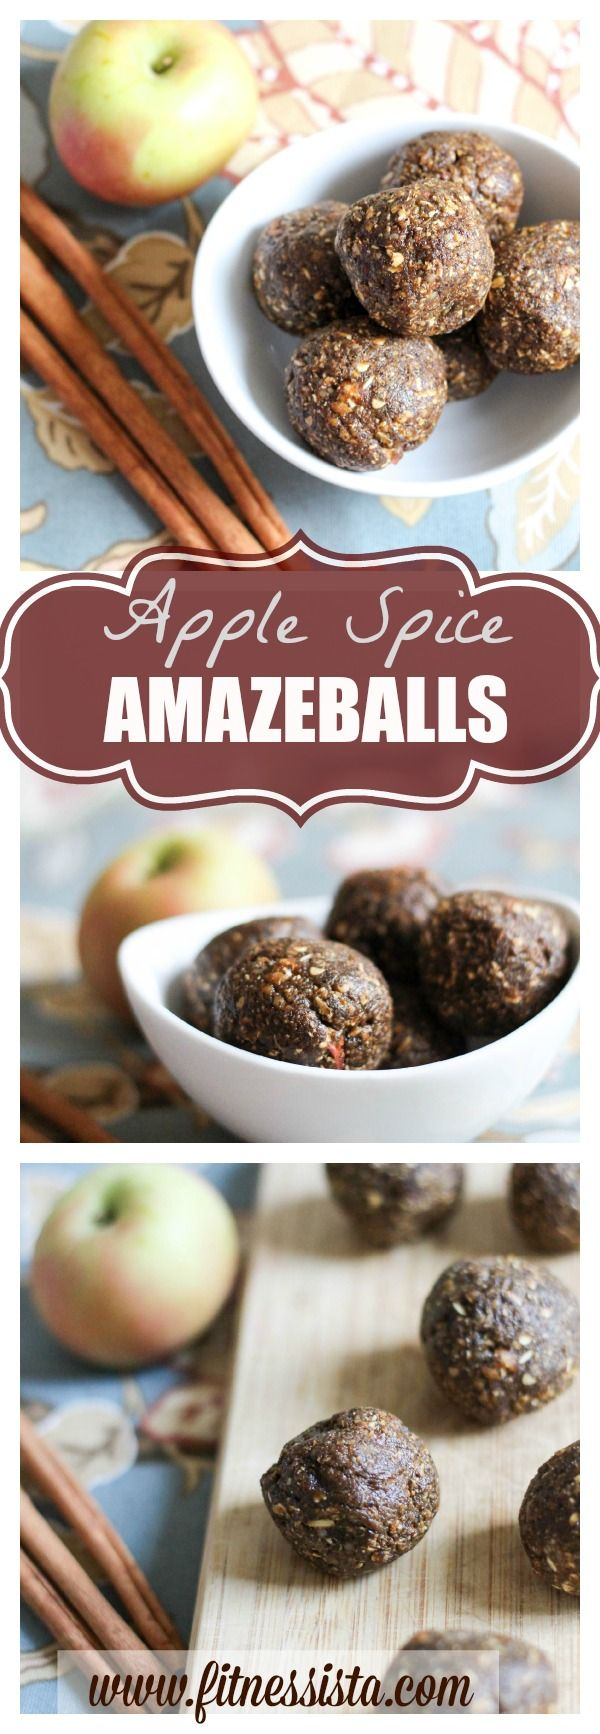 Apple spice amazeballs. All clean eating ingredients are used to make these healthy energy bites! Pin this healthy snack recipe to make later!!